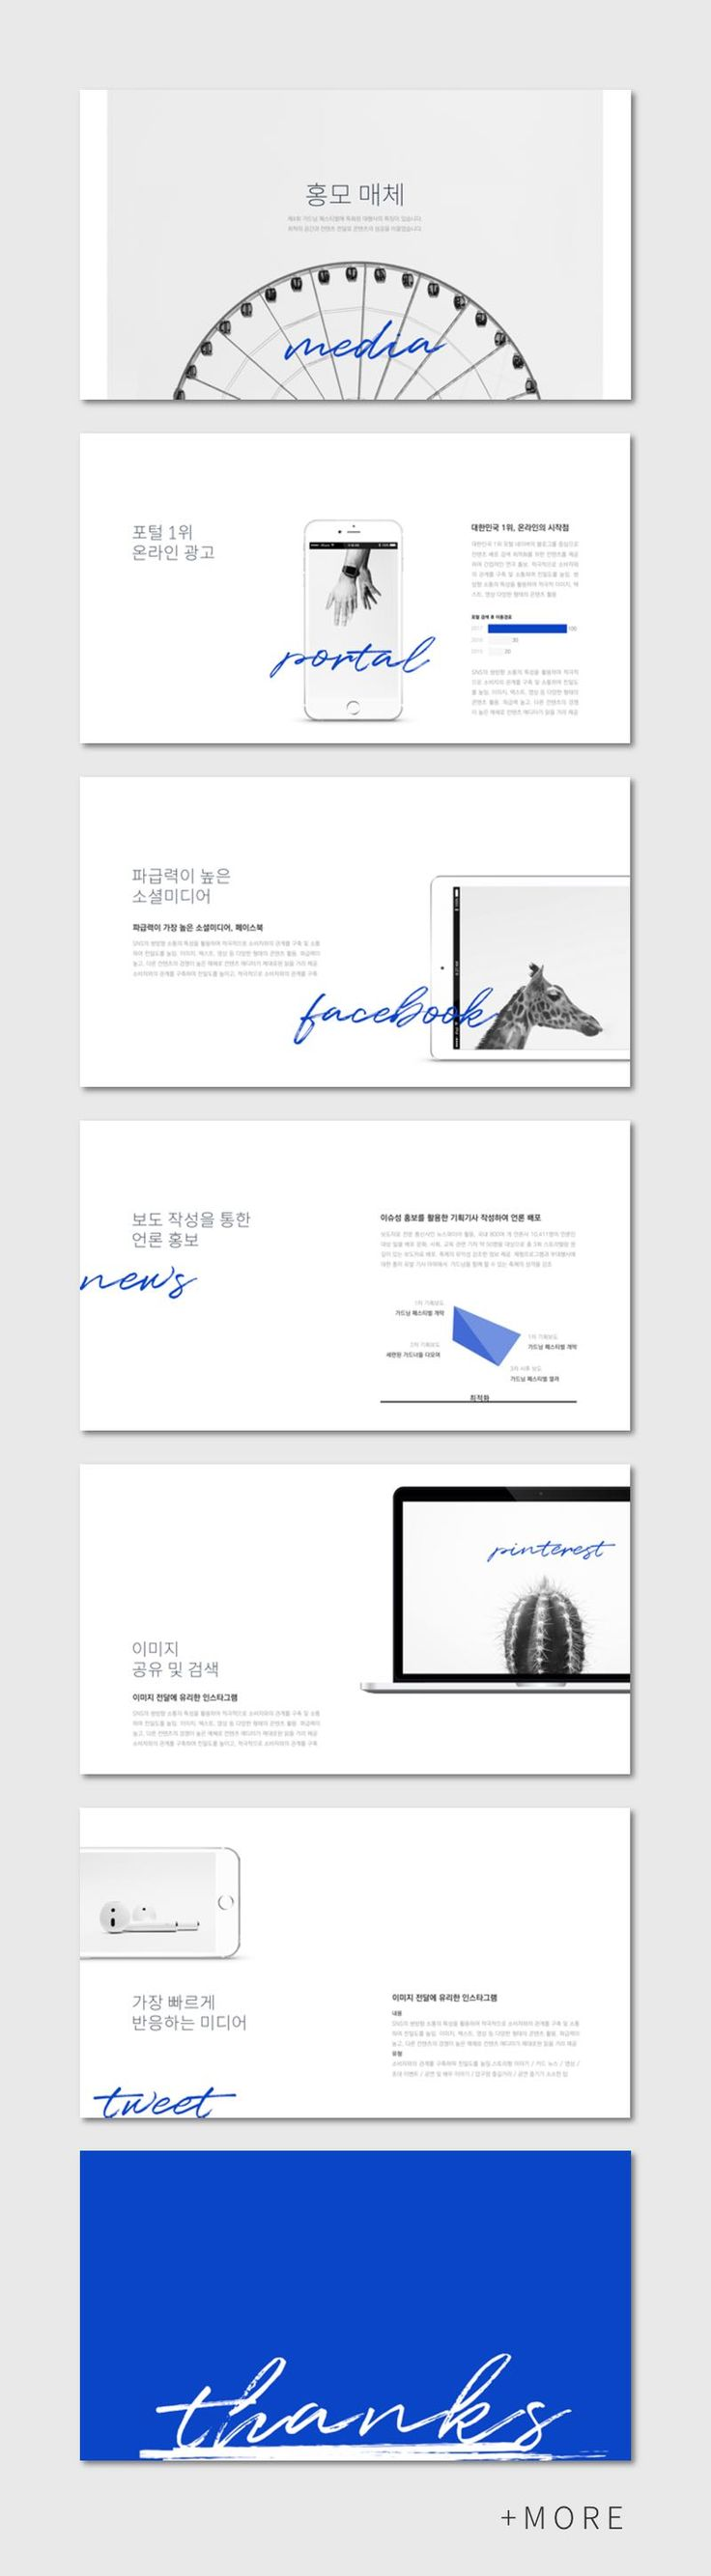 심플한 마케팅 제안서 Point Presentation Template #keynote #simple #minimal #business #marketing #portfolio #ppt